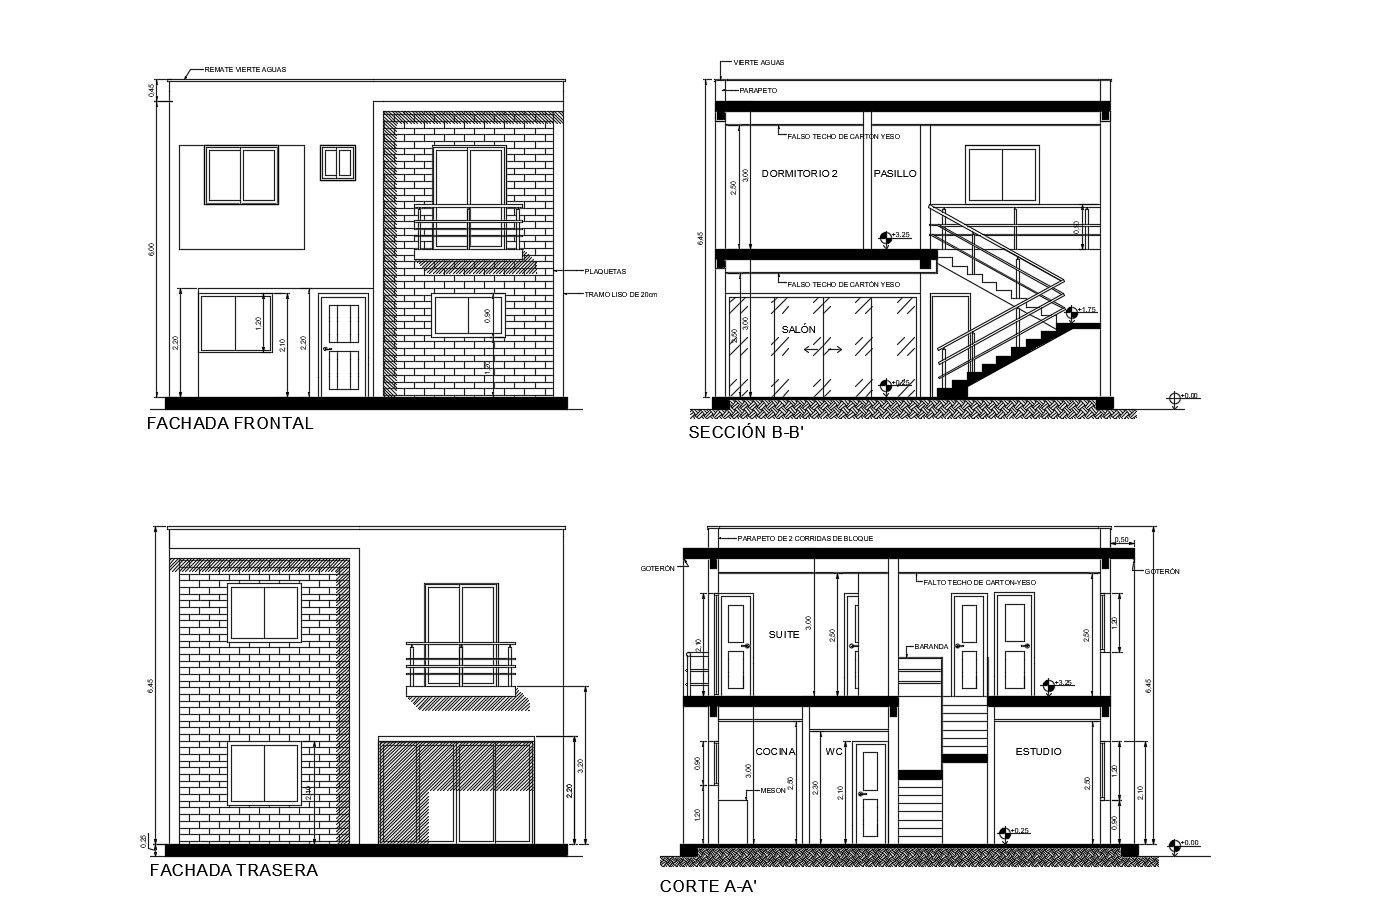 2 Storey House With Elevation And Section In Autocad Drawing Which Provides Detail Of Front Ele Two Story House Design Architectural House Plans 2 Storey House